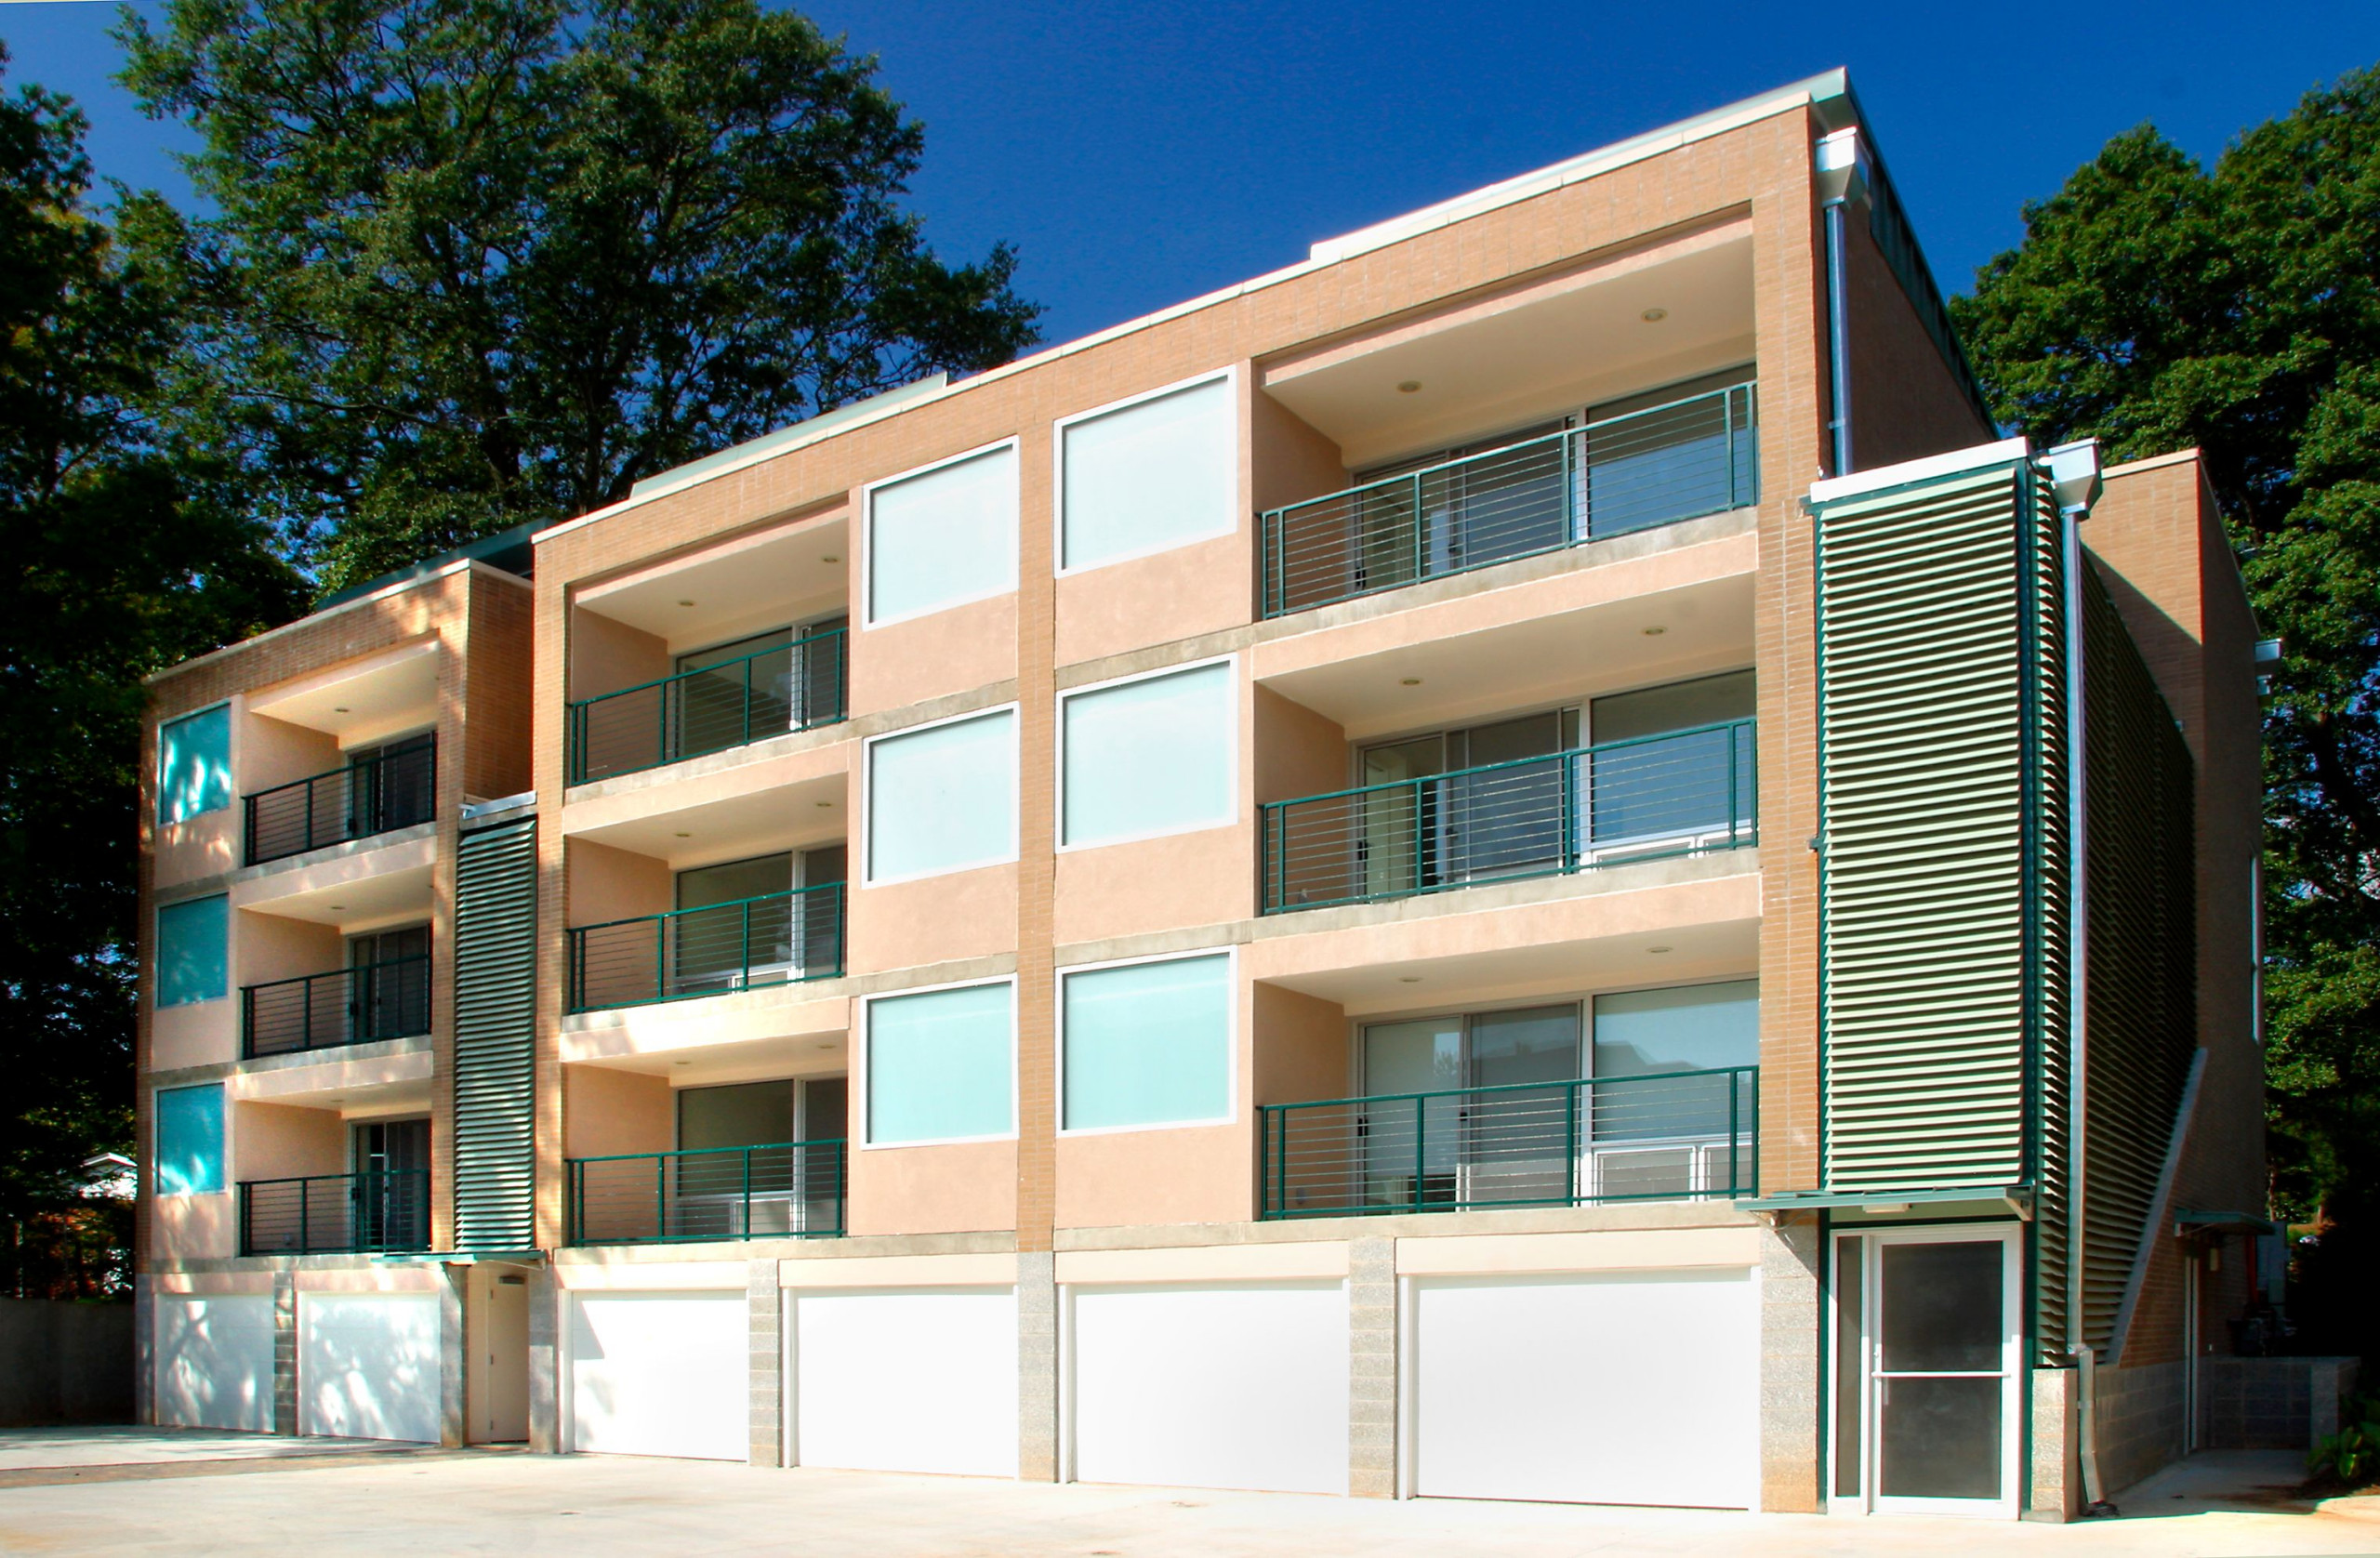 Highland Green Townhomes on Freedom Park